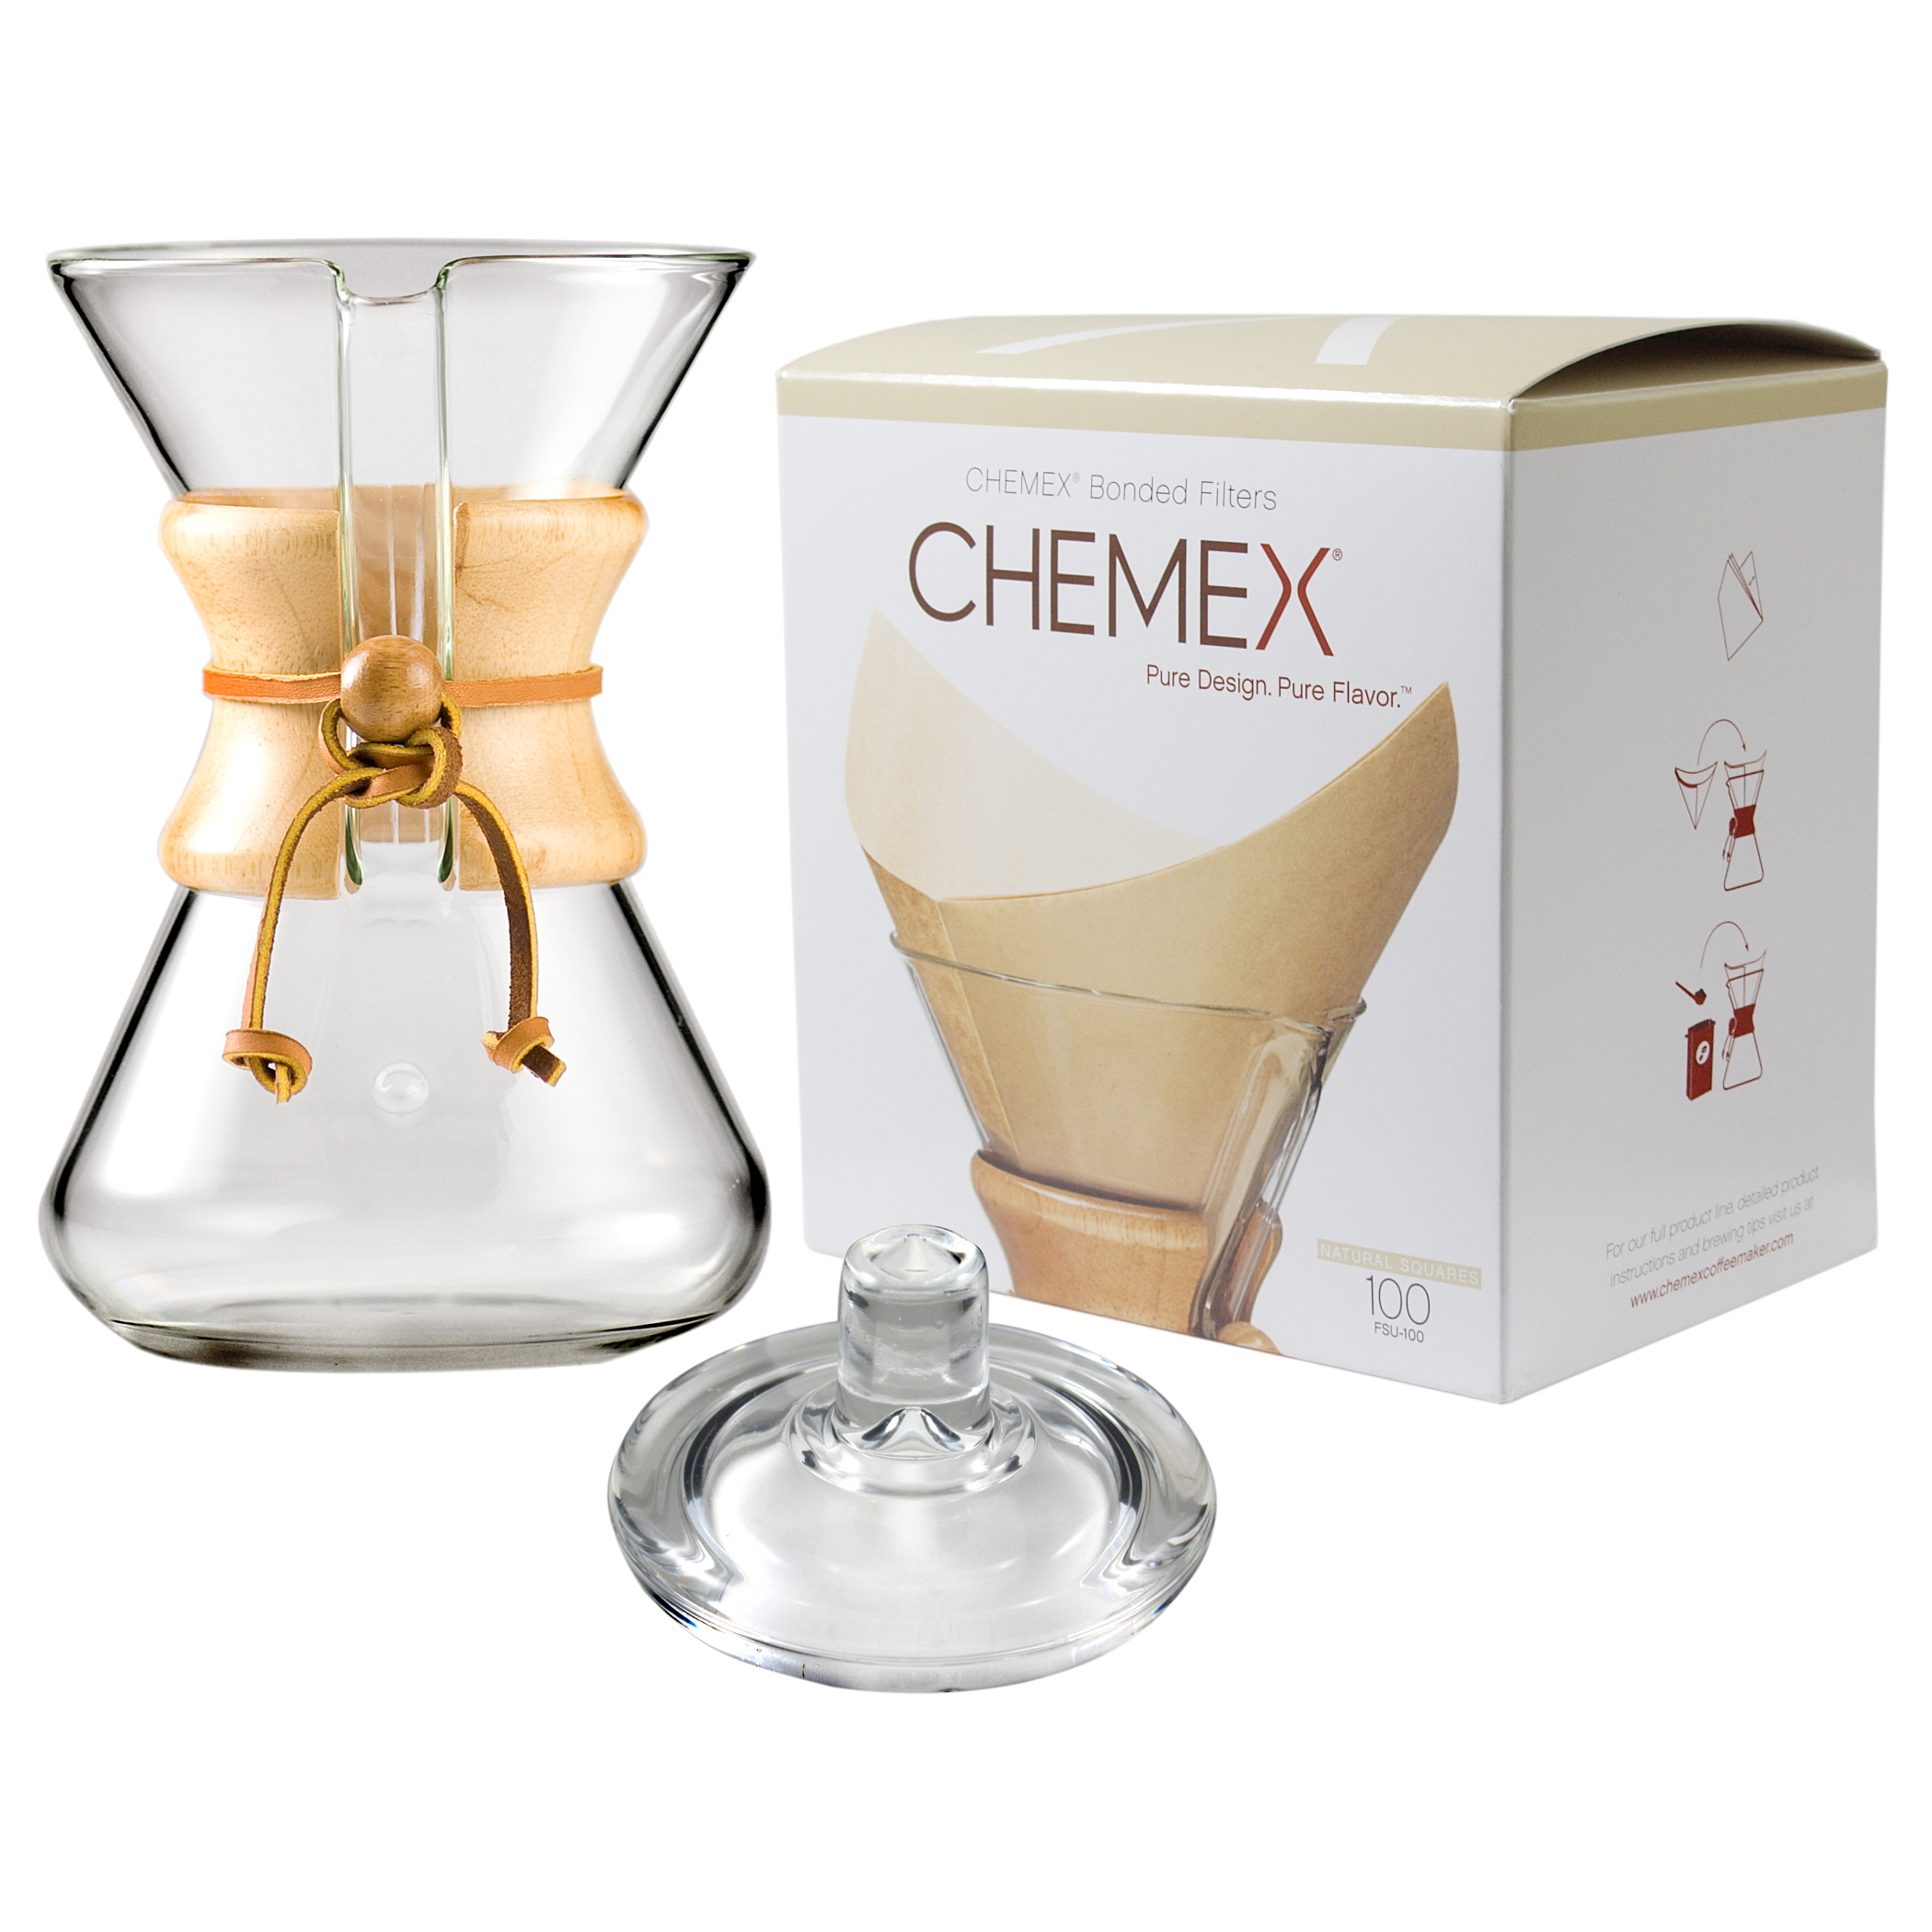 Chemex Wood Collar and Tie Glass 30 Ounce Coffee Maker with Cover and 100 Count Bonded Unbleached Pre-Folded Square Coffee Filters